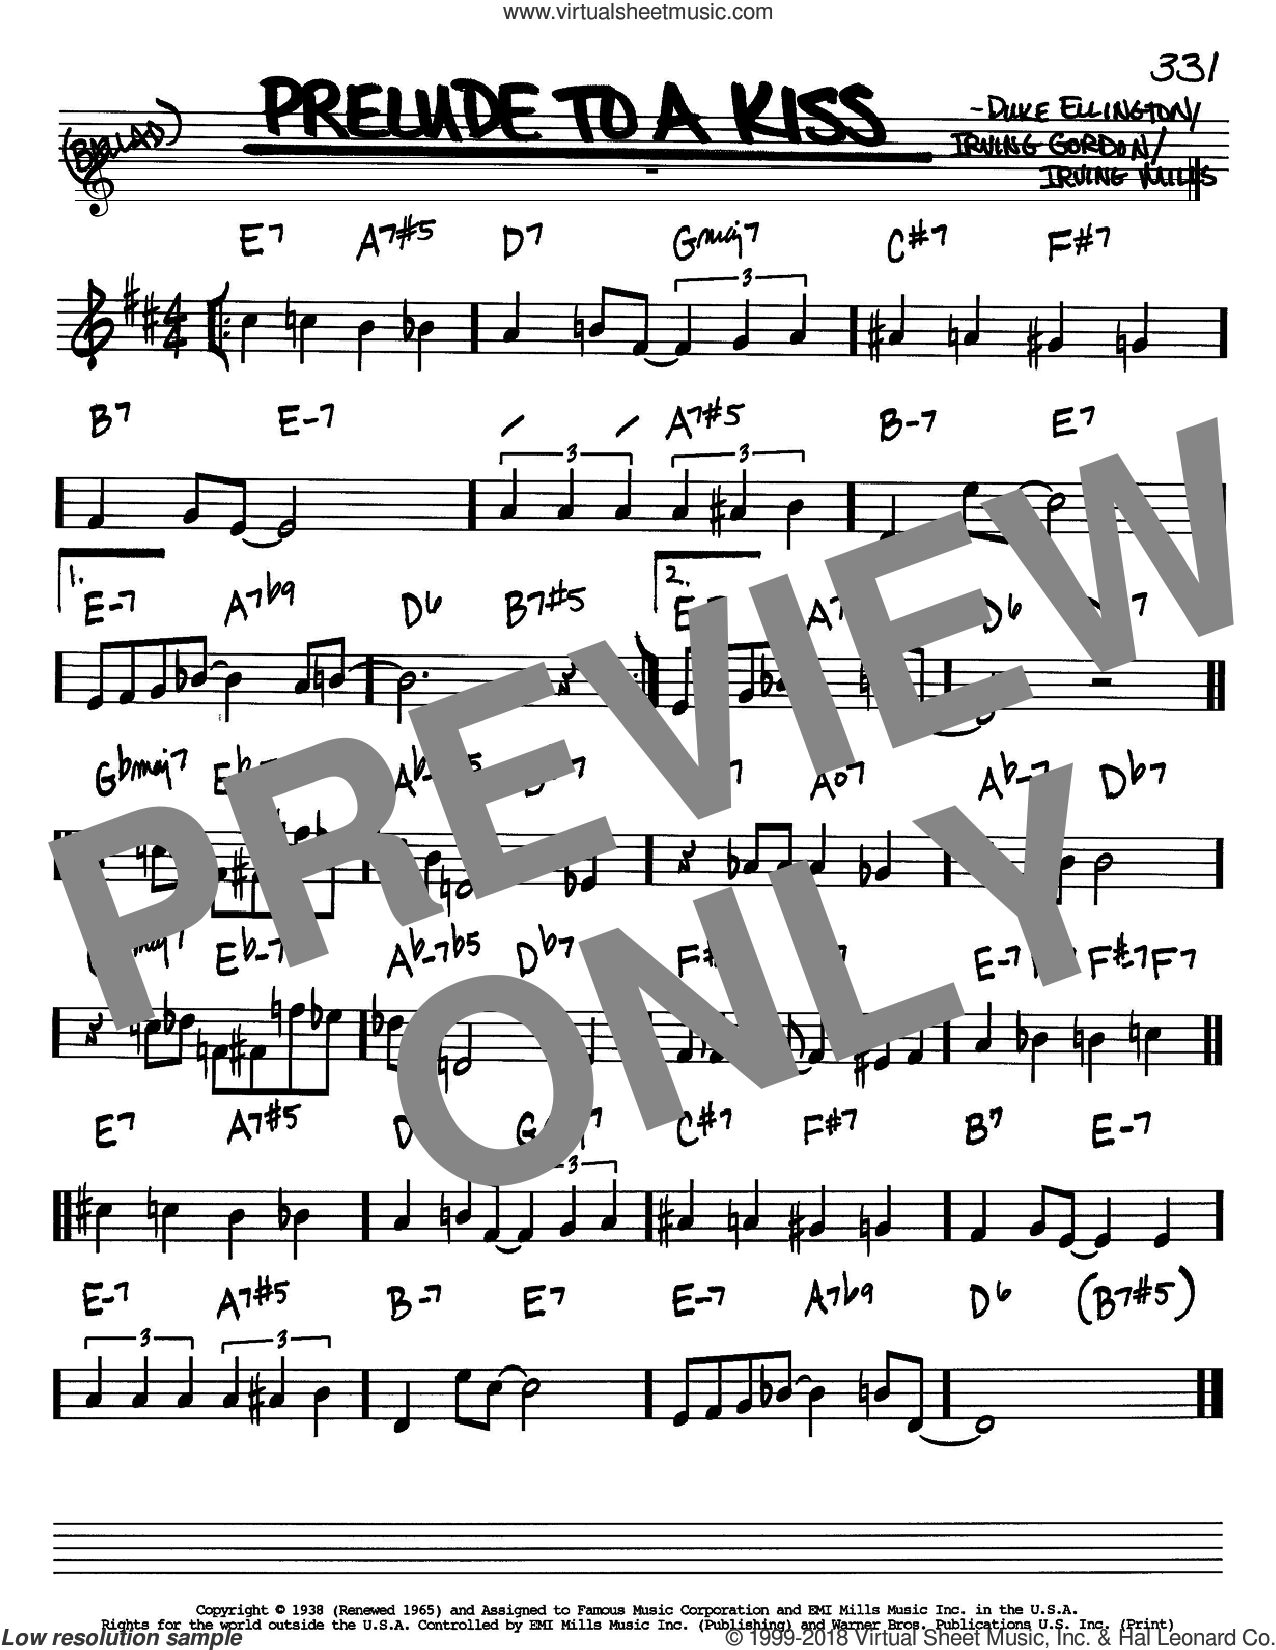 Prelude To A Kiss sheet music for voice and other instruments (Bb) by Duke Ellington, Irving Gordon and Irving Mills, intermediate voice. Score Image Preview.